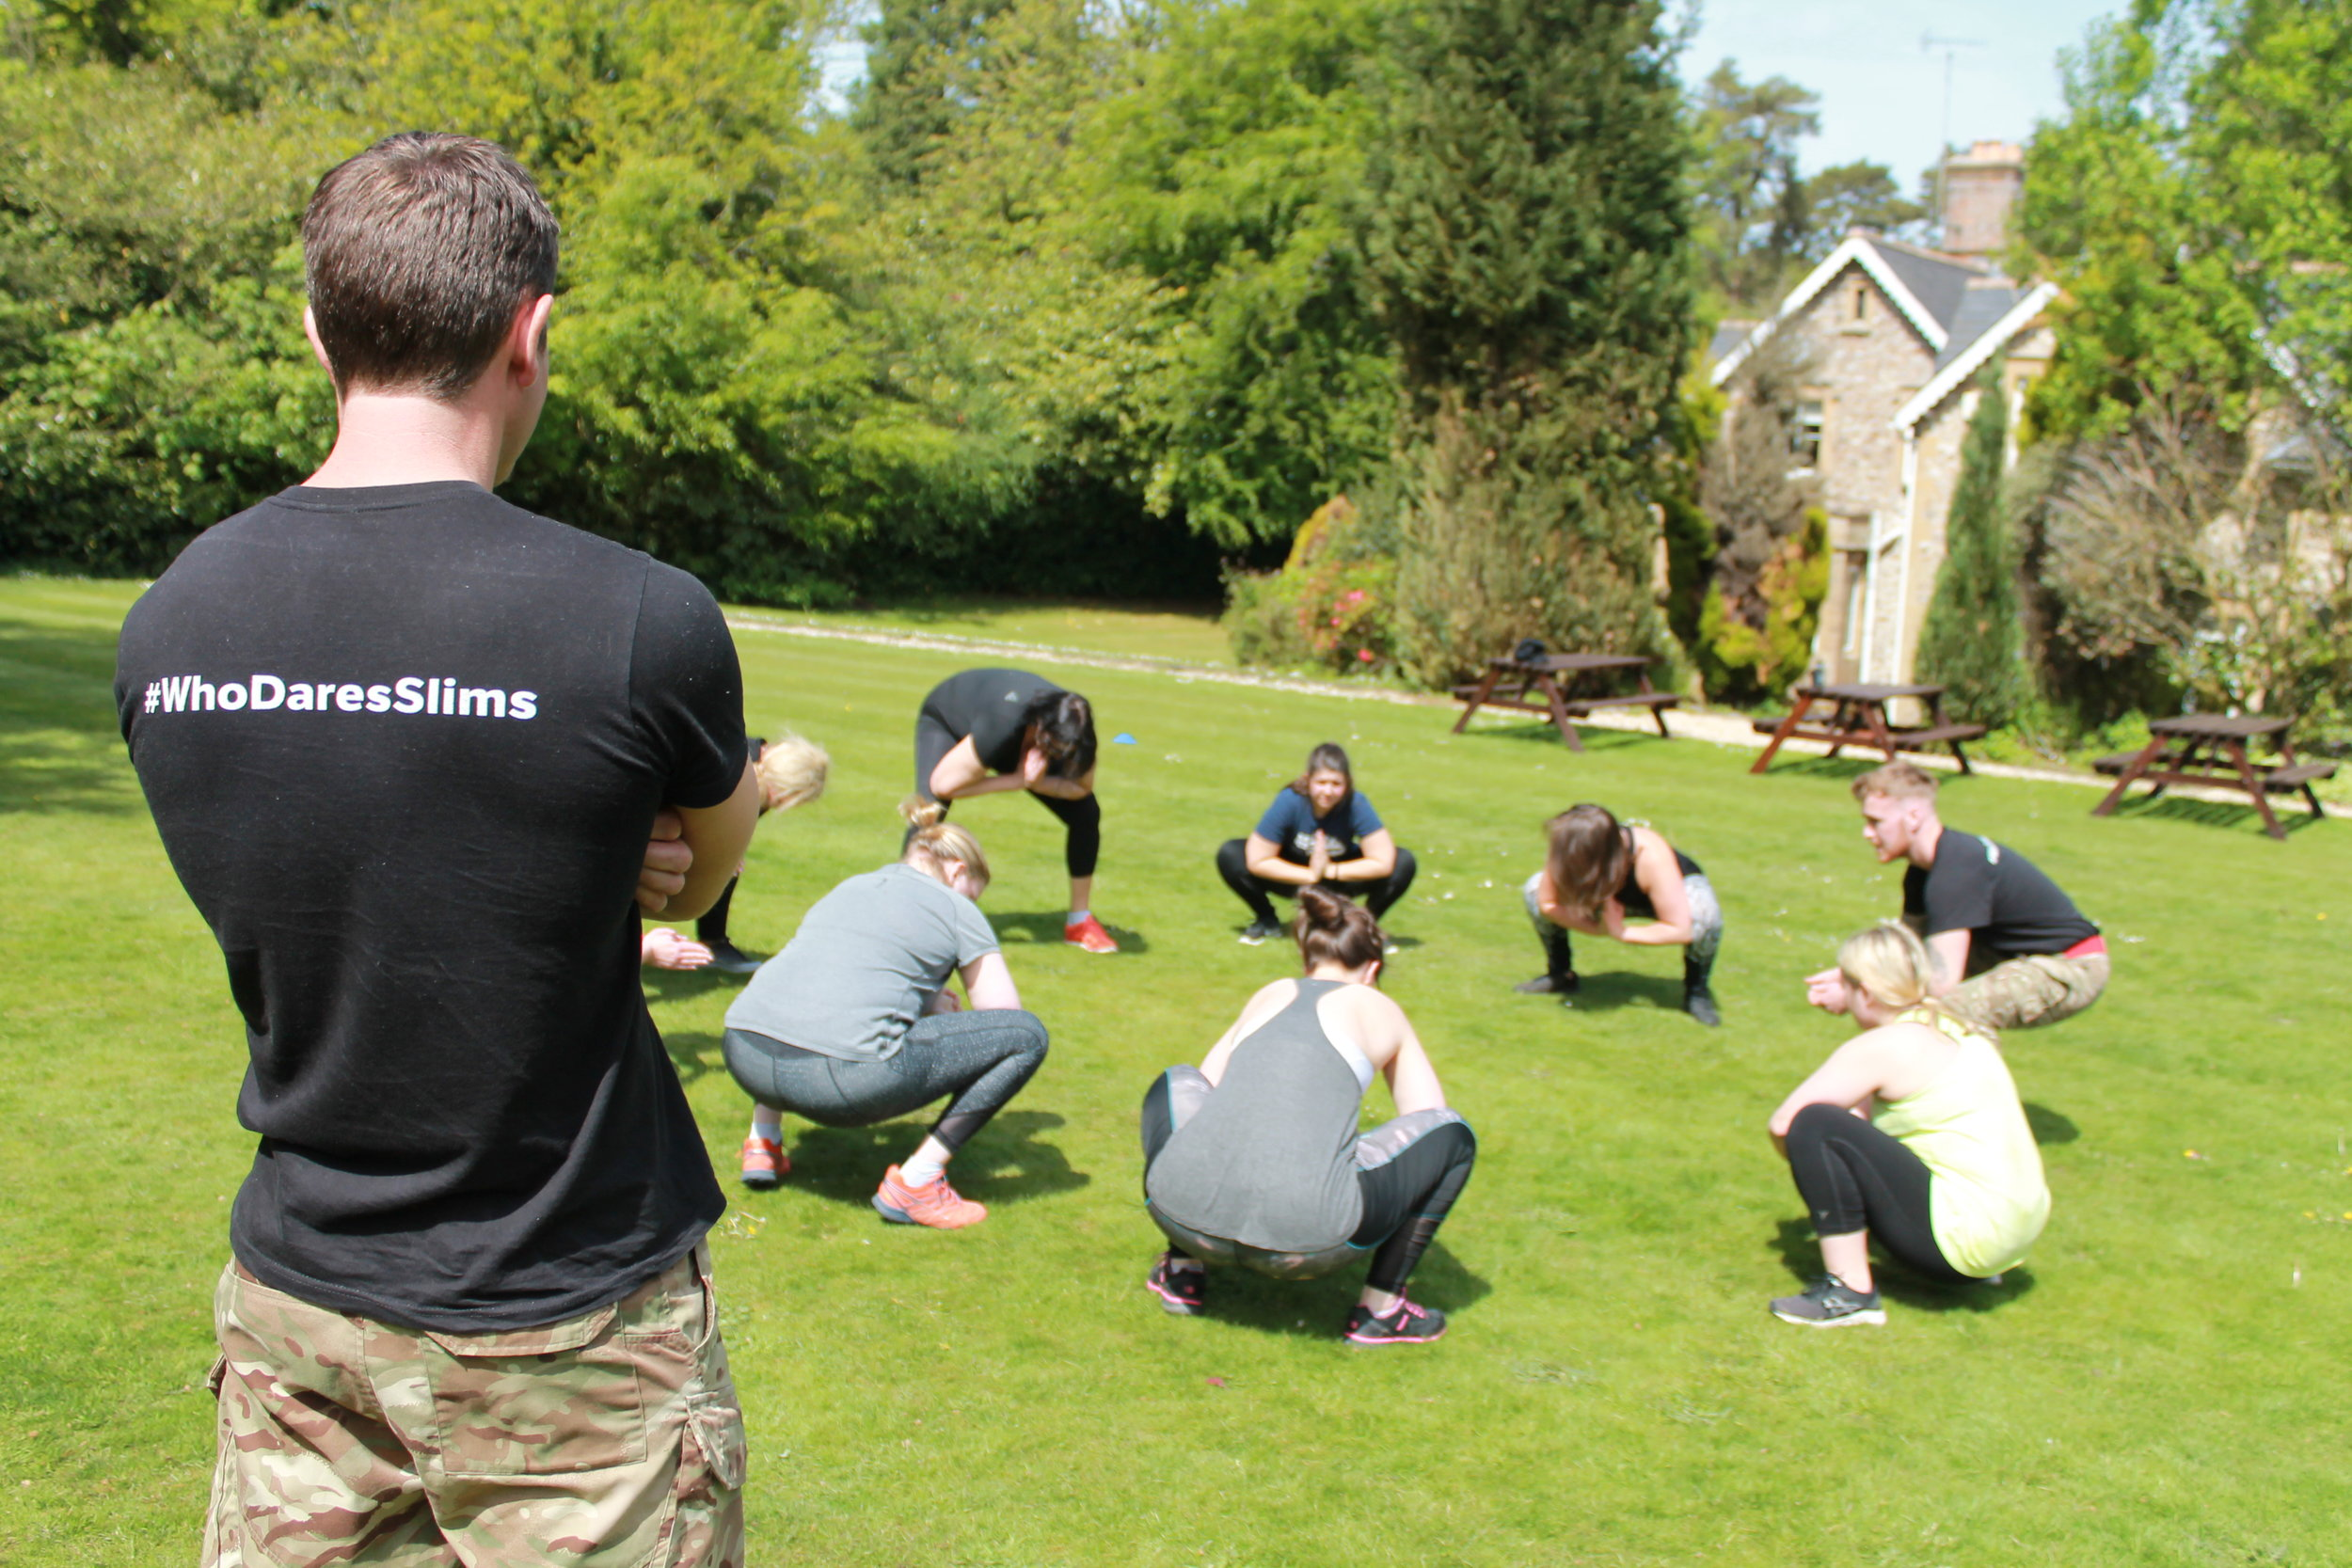 Who Dares Slims fitness and weight loss boot camp in Scotland